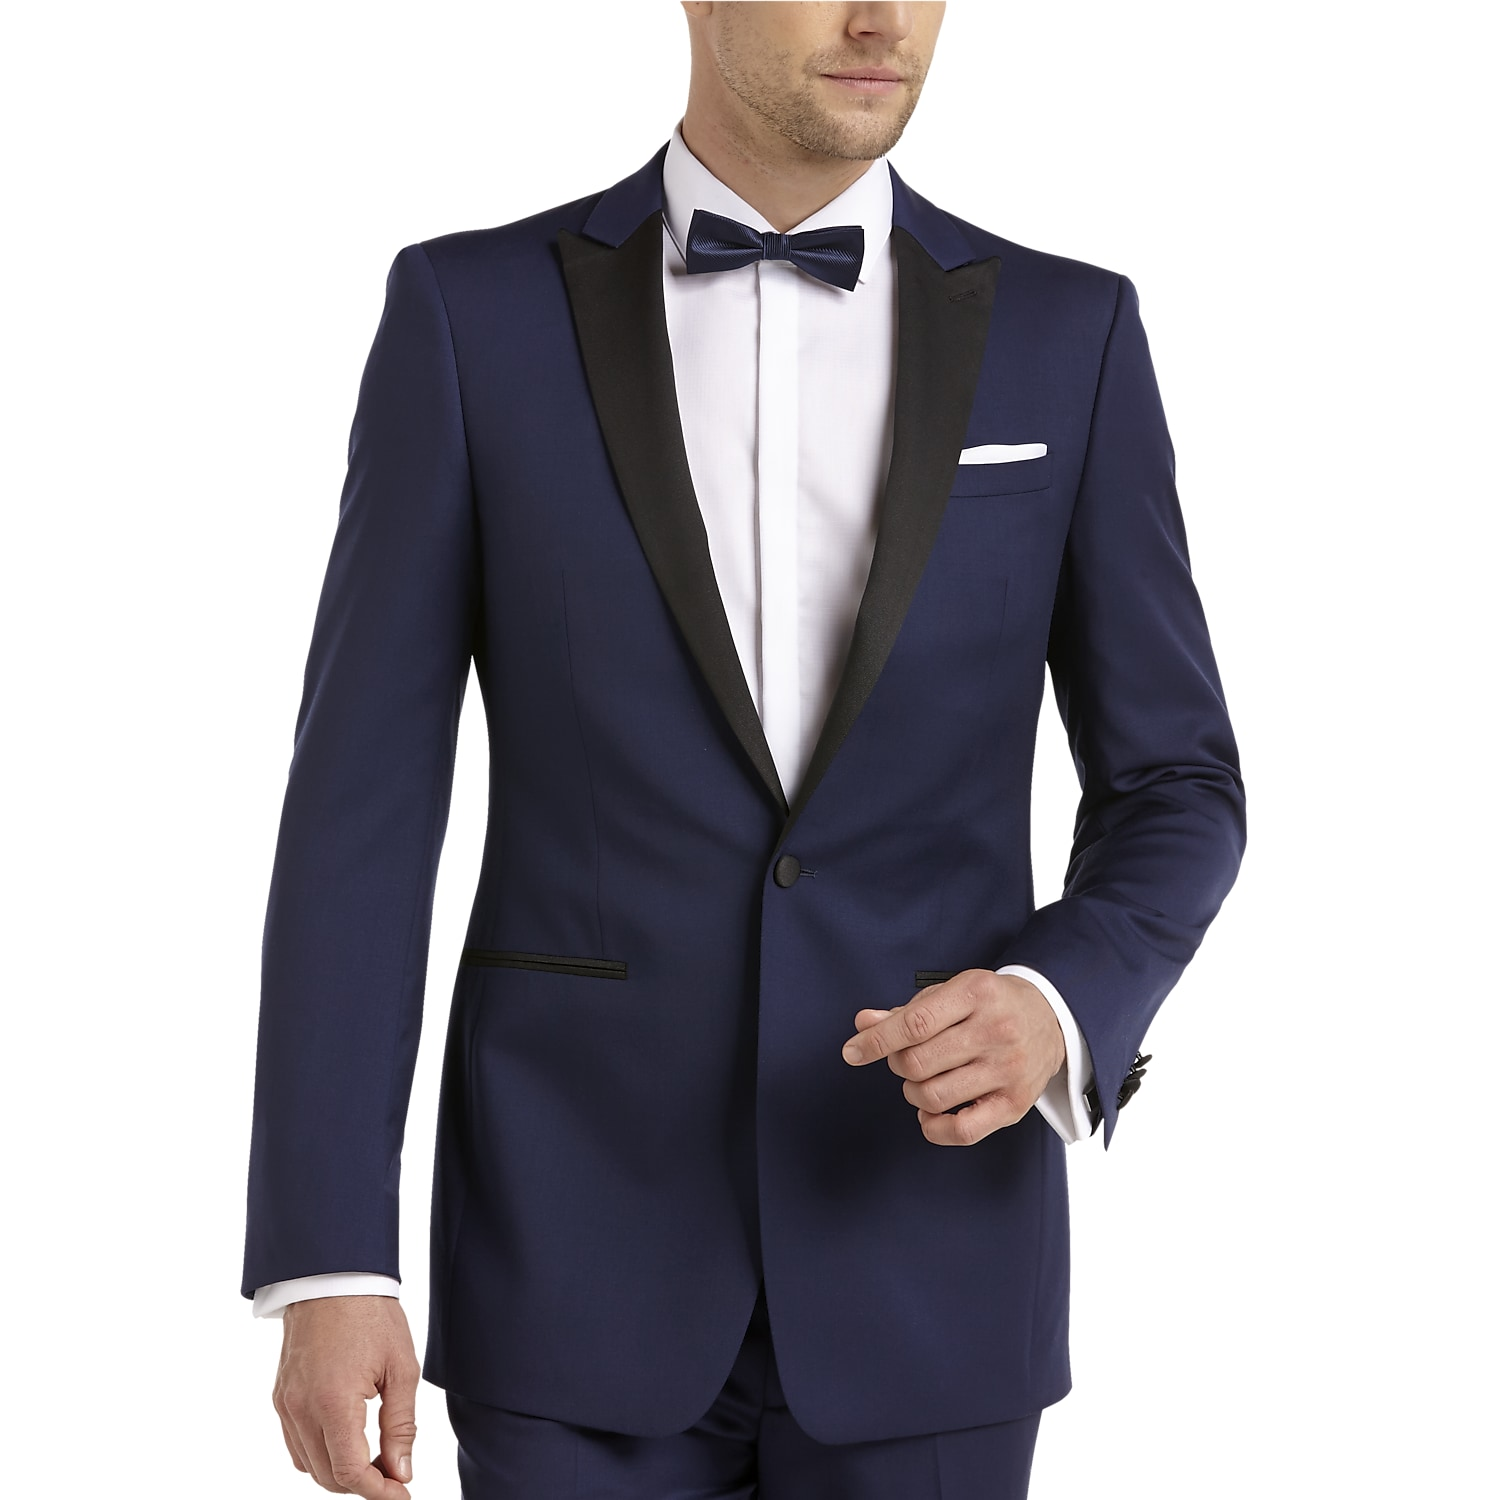 Men's Suits Clearance, Shop Closeout Designer Business Suits ...